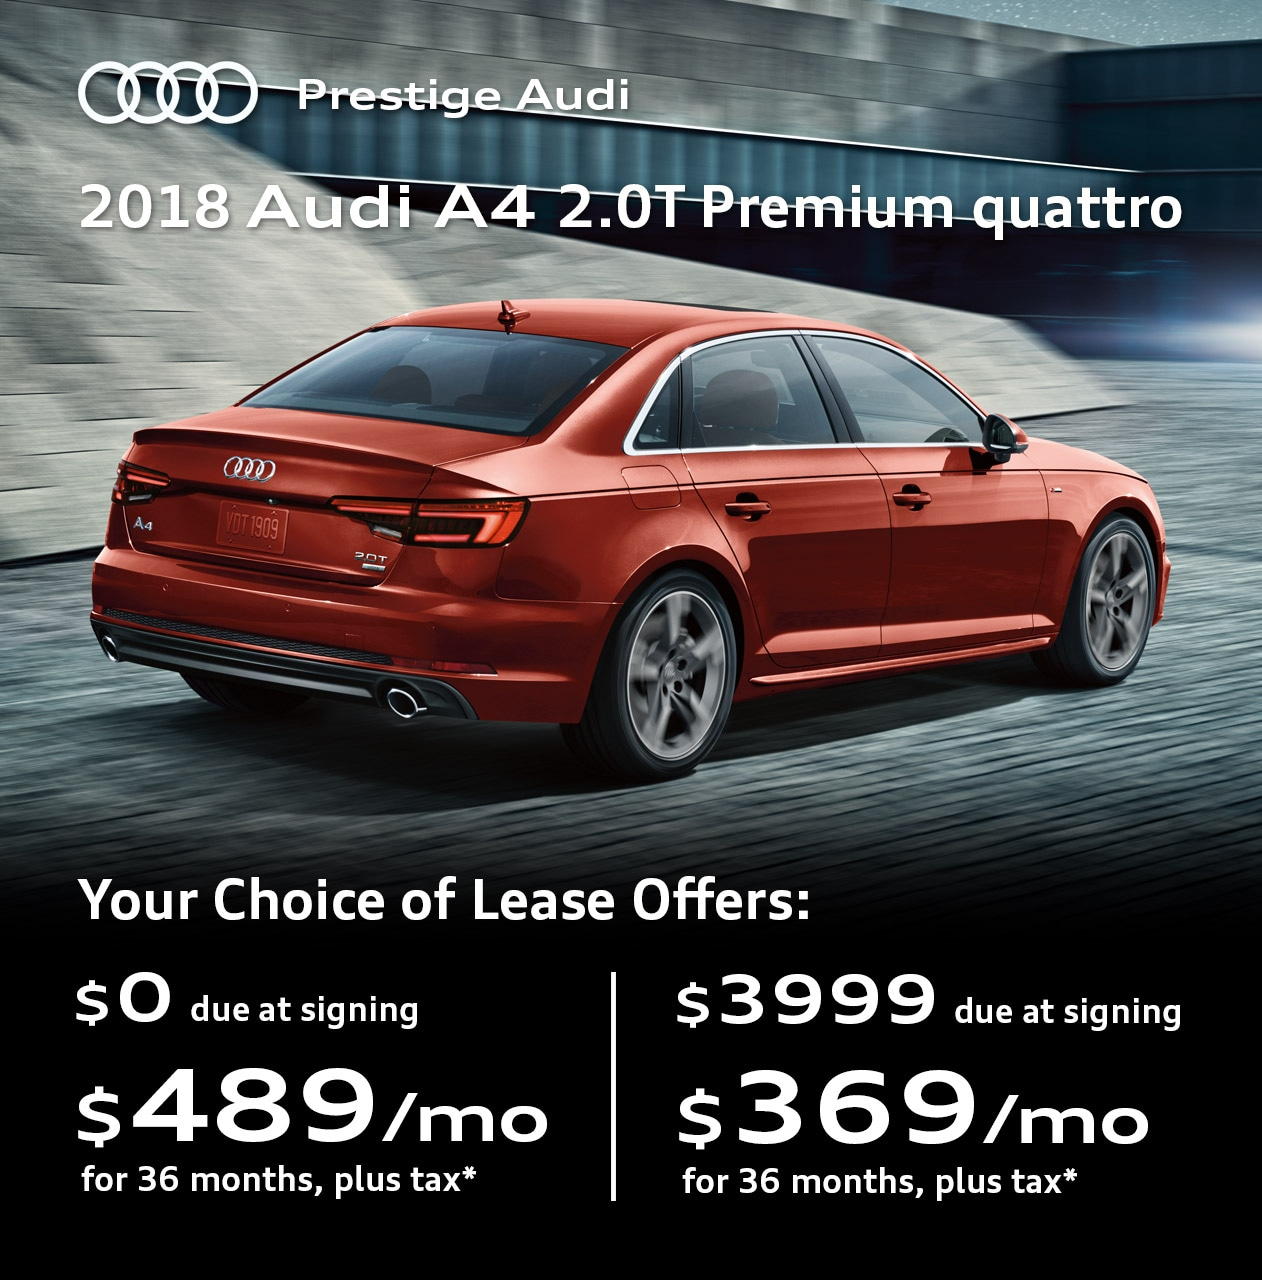 Audi Specials Lease Deals Offers At Prestige Audi Near Denver Co - Audi leases